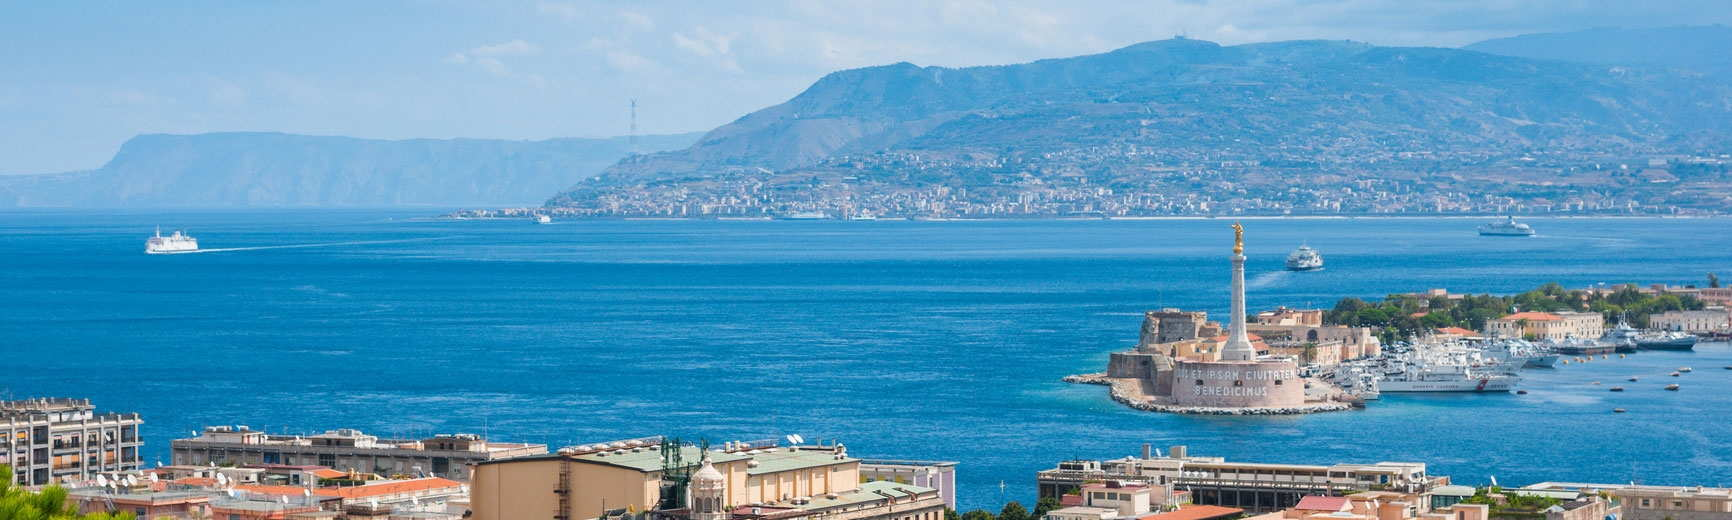 View of the coast in Messina, Sicily.